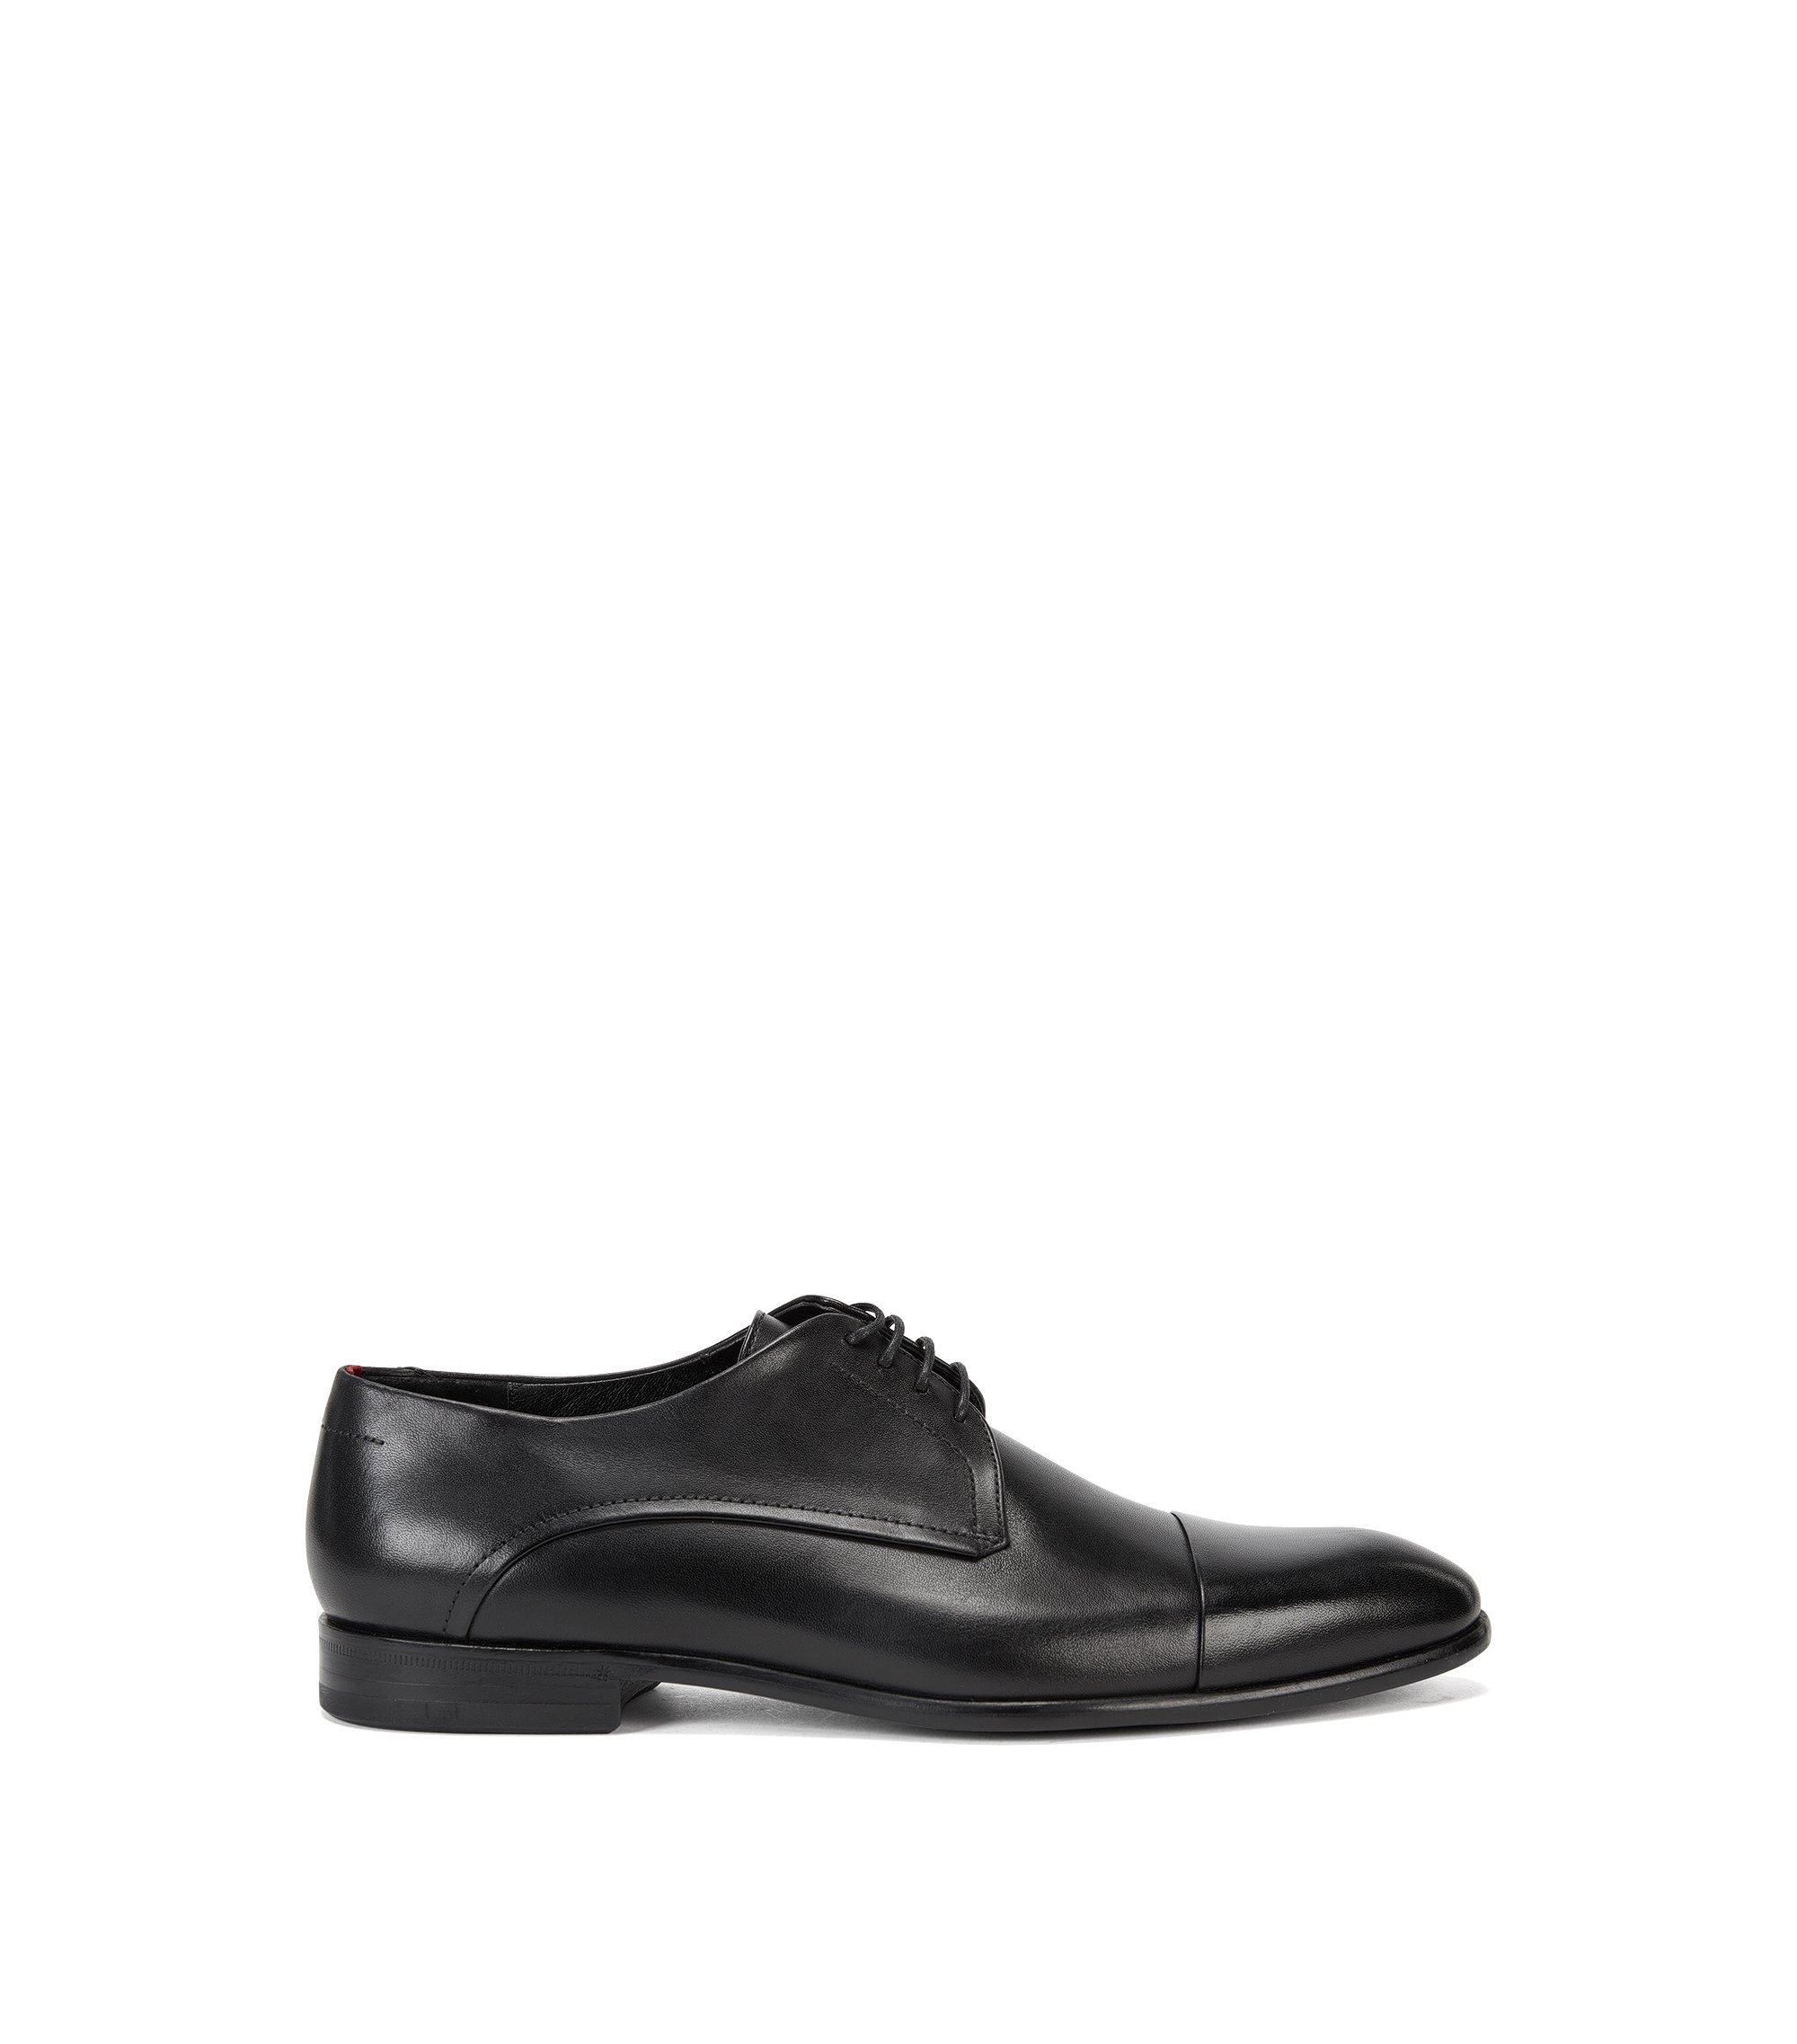 Italian Leather Derby Dress Shoe | Dressapp Derb Buctst, Black